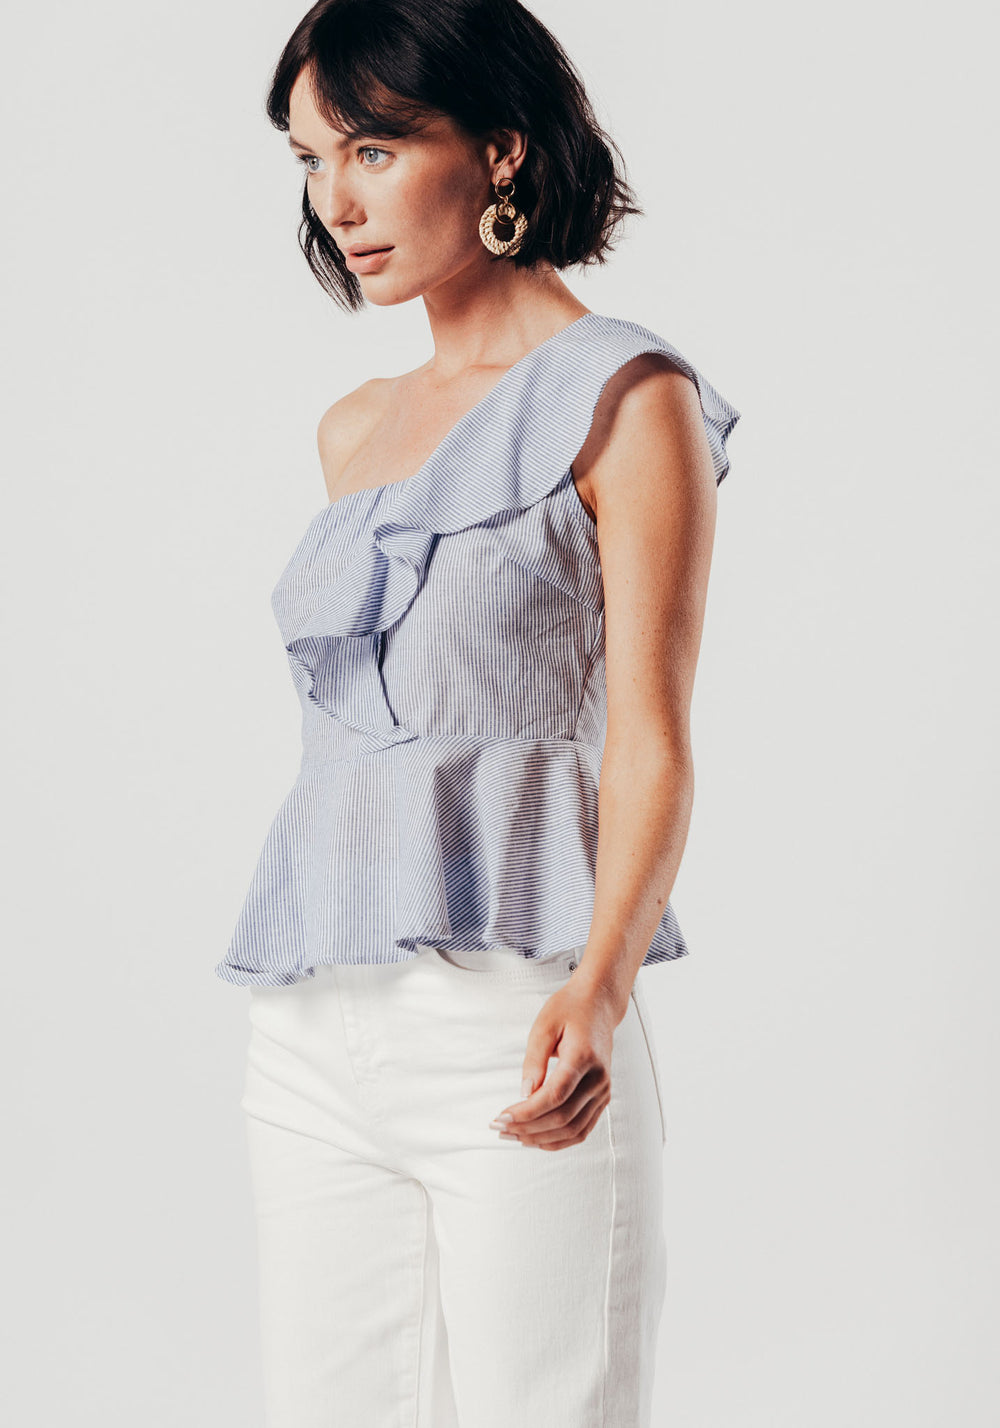 Blue One Sleeved Top With Peplum Detail